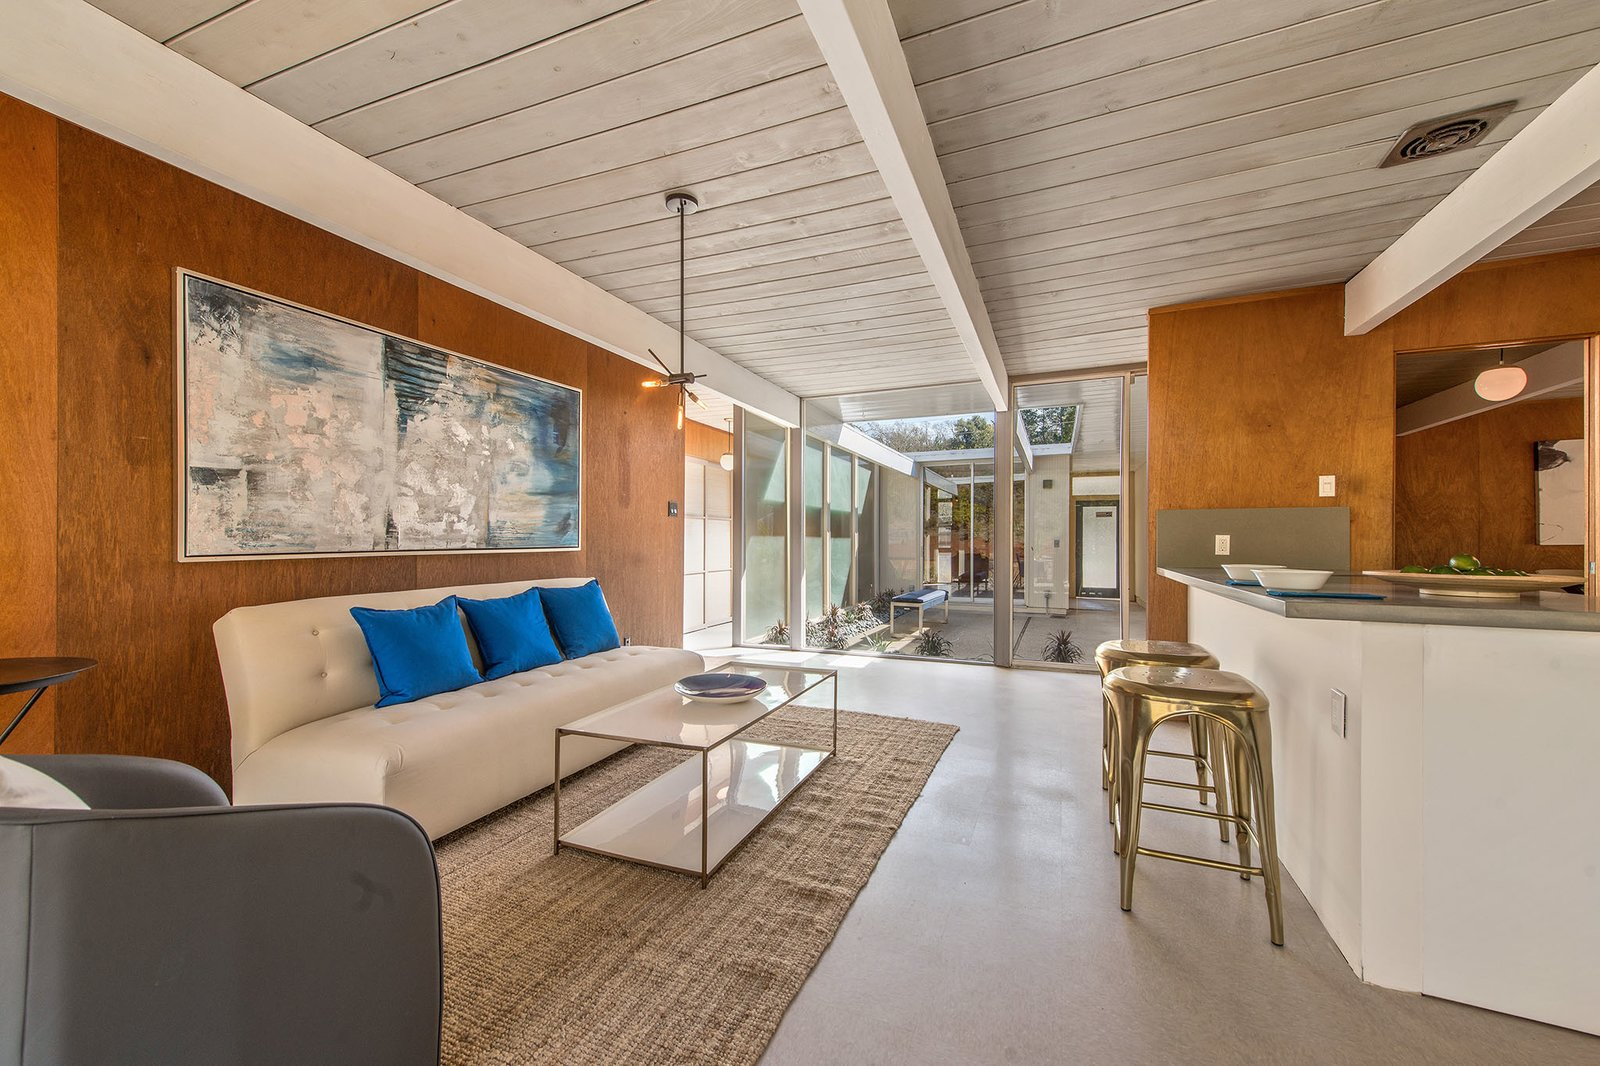 The walls are original Philippine mahogany and offer authentic midcentury charm.